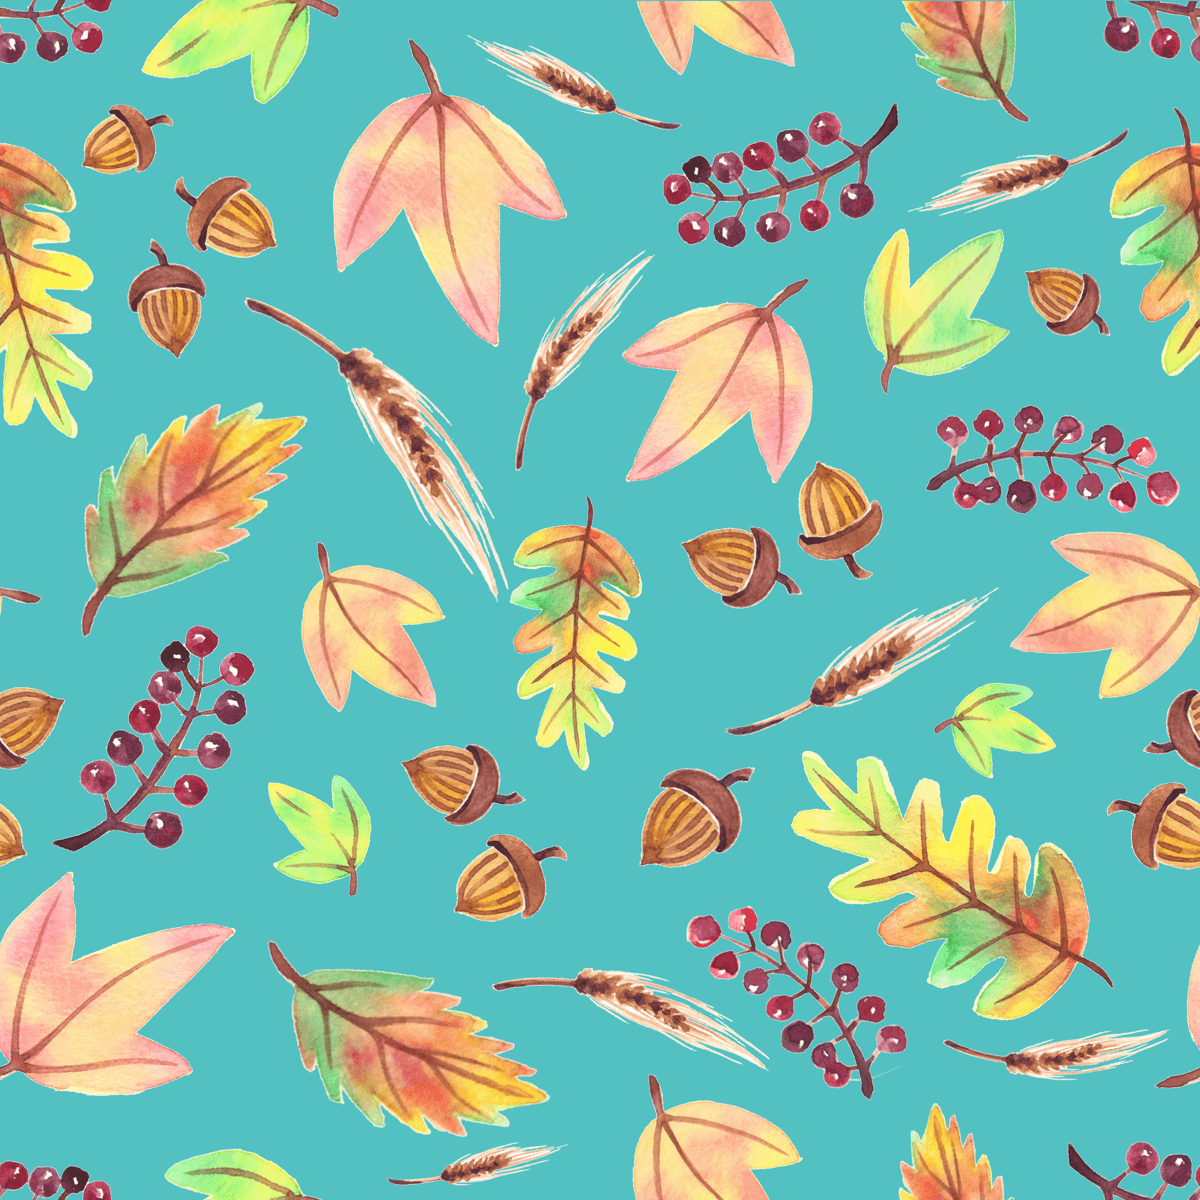 Fall surface pattern with leaves, berries and acorns